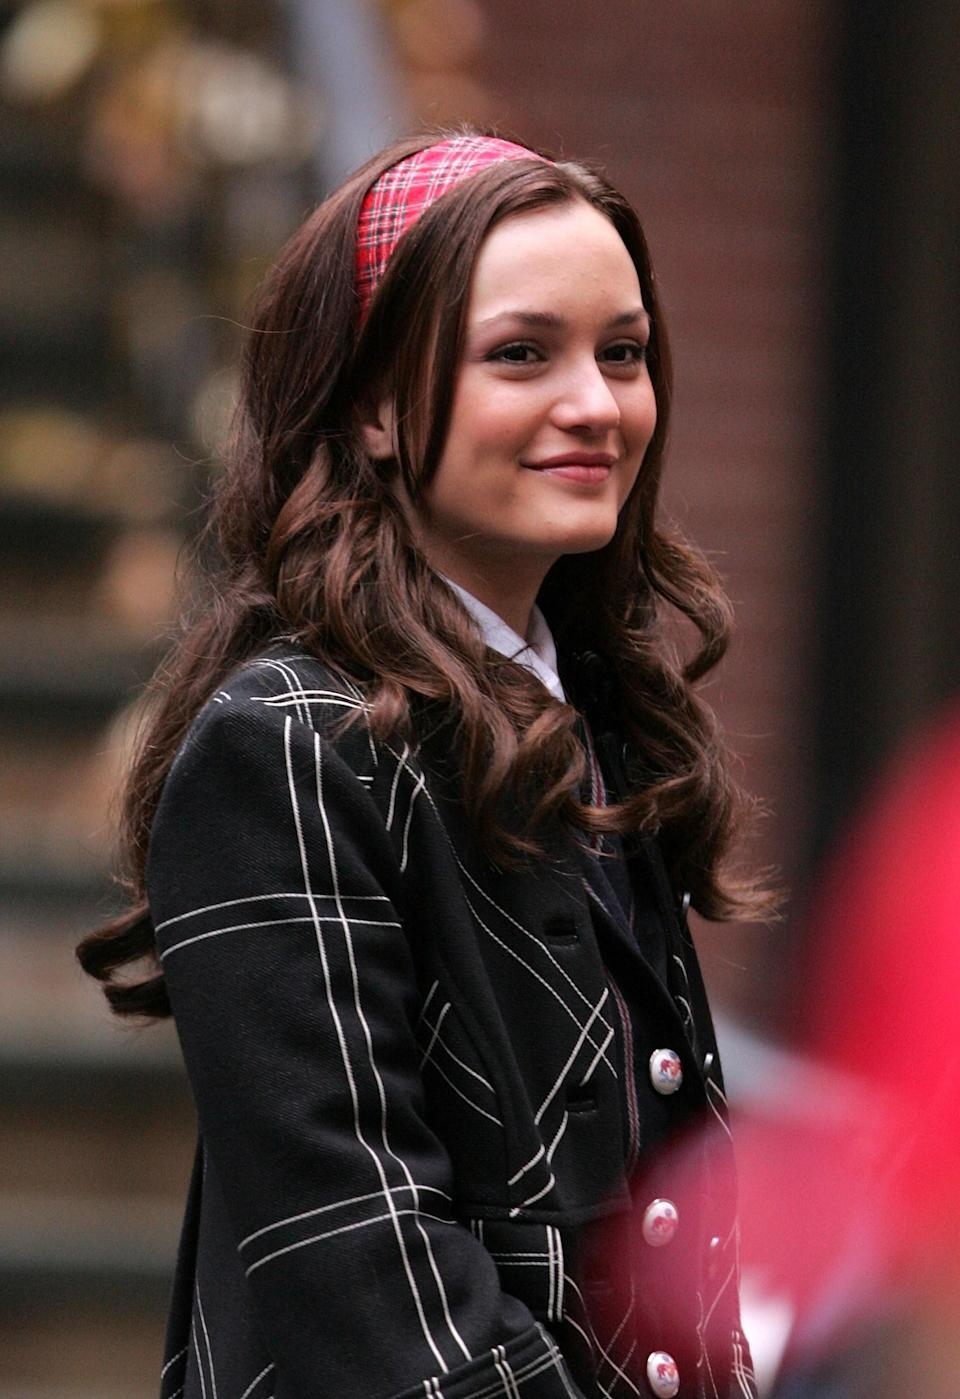 """<h1 class=""""title"""">On Location for """"Gossip Girl"""" - November 26, 2007</h1><cite class=""""credit"""">James Devaney</cite>"""